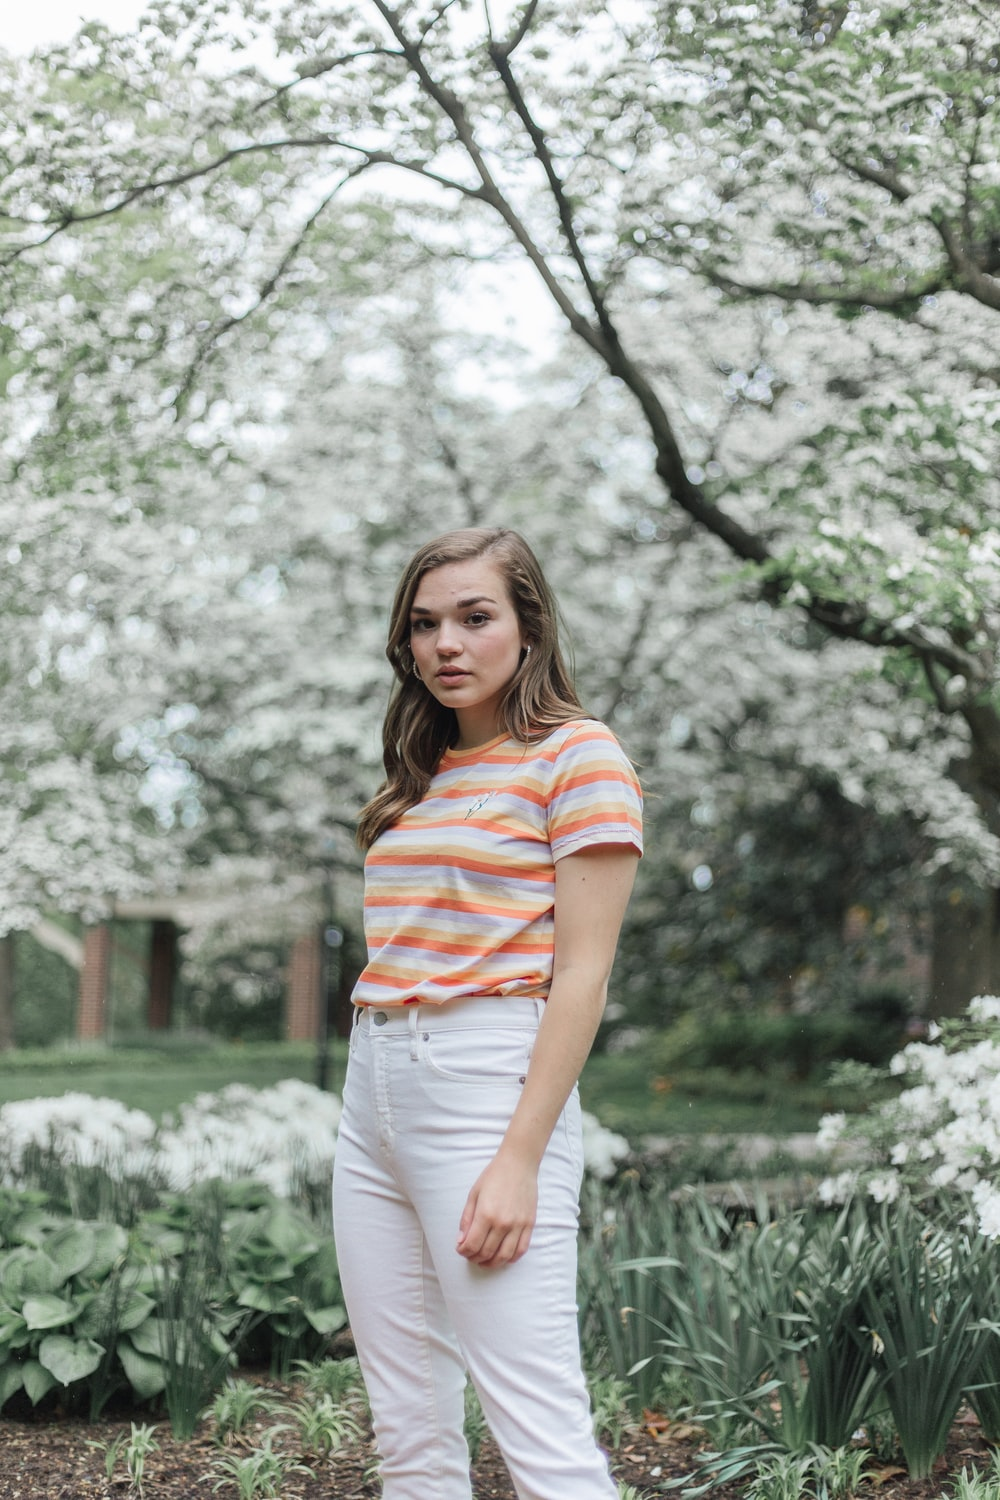 woman in white and red striped shirt standing near trees during daytime